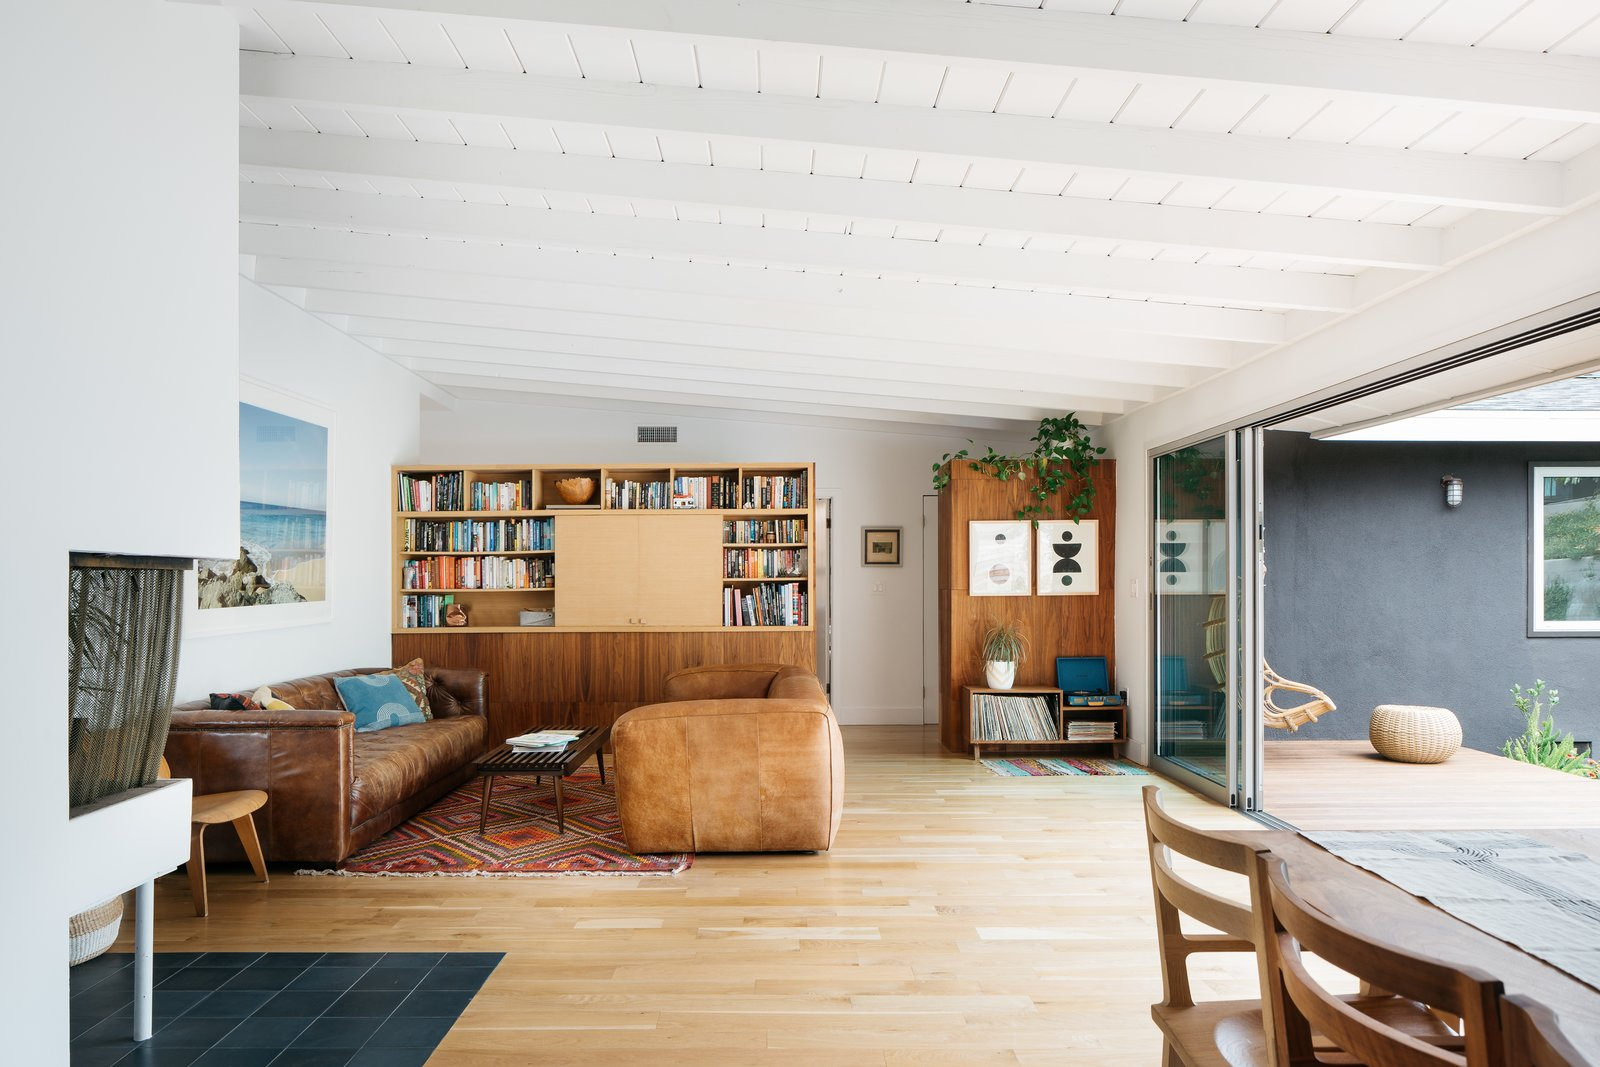 19 Laudable Midcentury Modern Renovations In Los Angeles Dwell